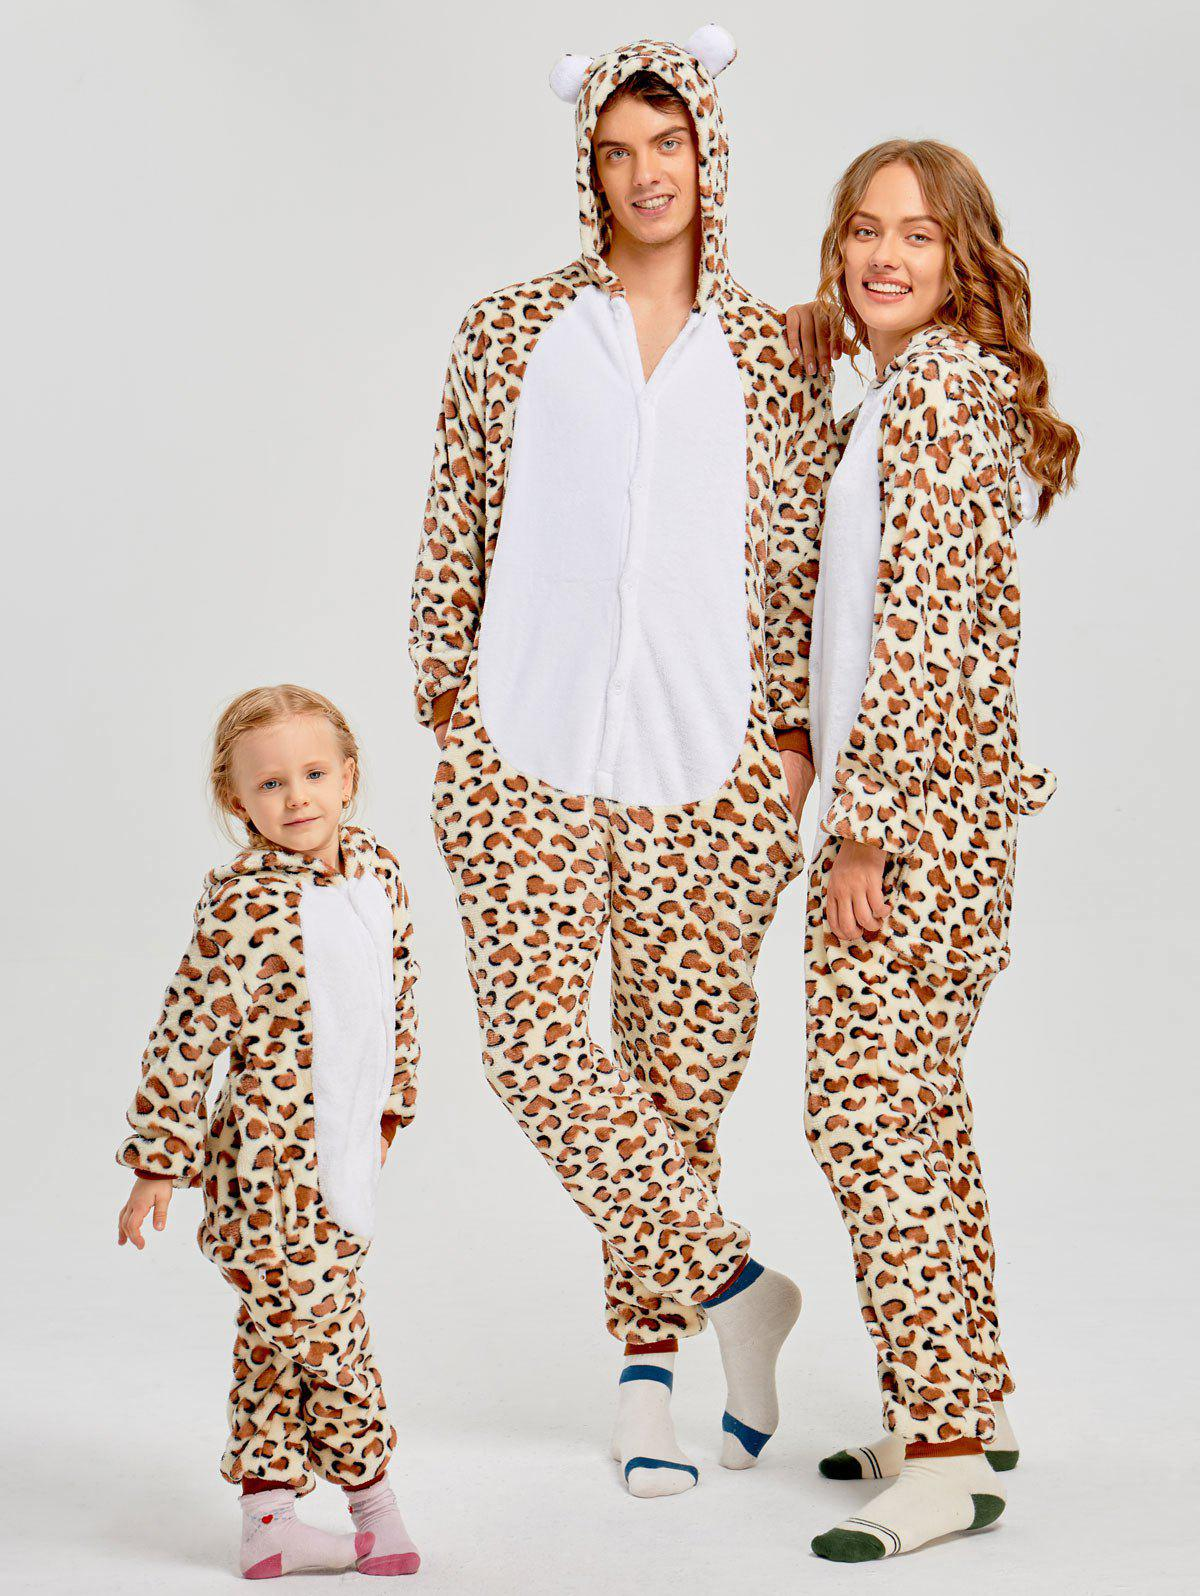 Family Leopard Printed Bear Animal  Onesie Pajamas  - LEOPARD PRINT PATTERN MOM S